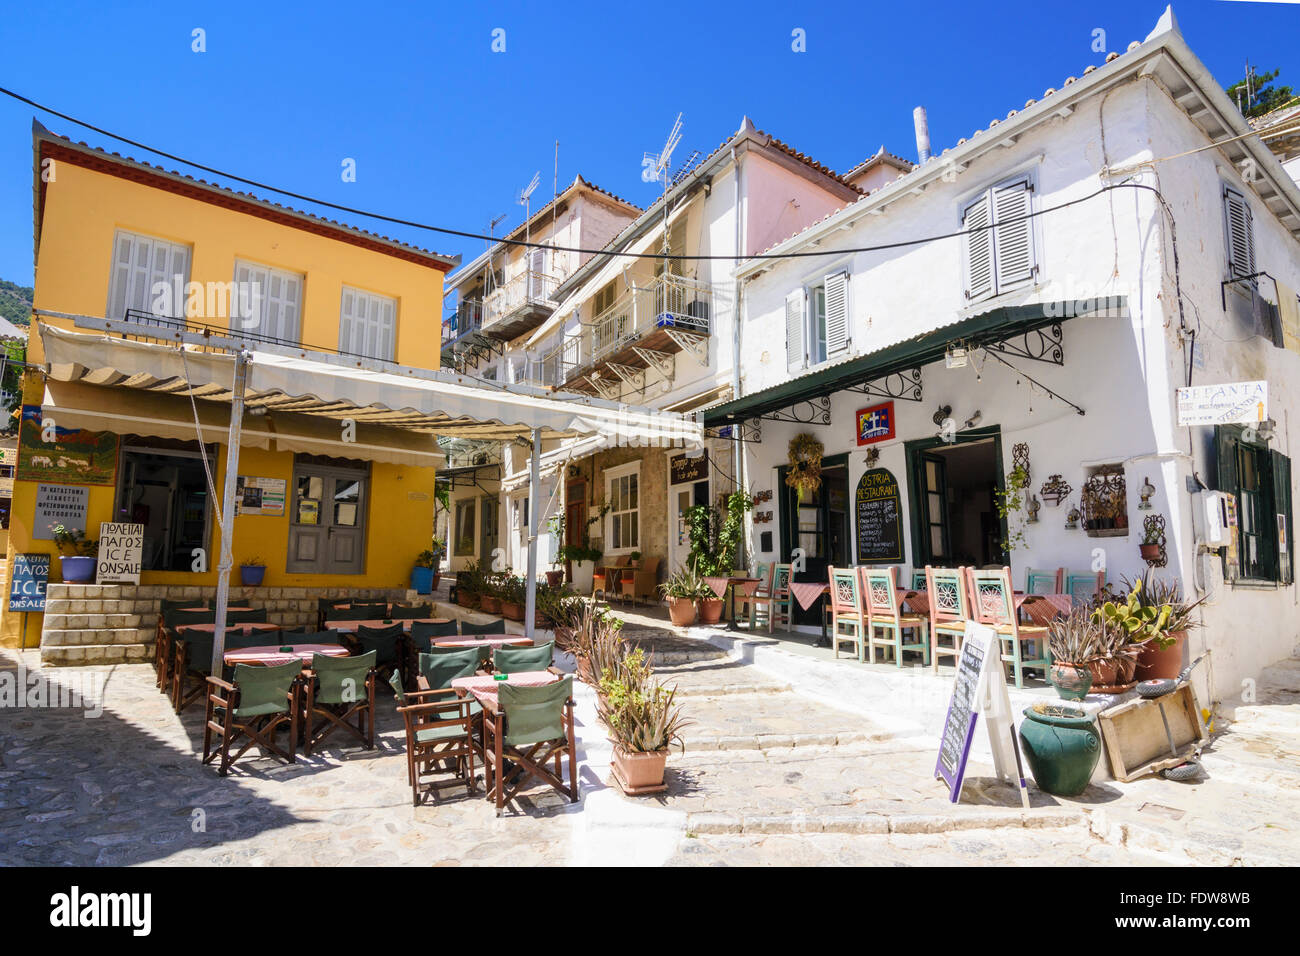 Restaurants and café in Hydra Town, Hydra Island, Greece - Stock Image